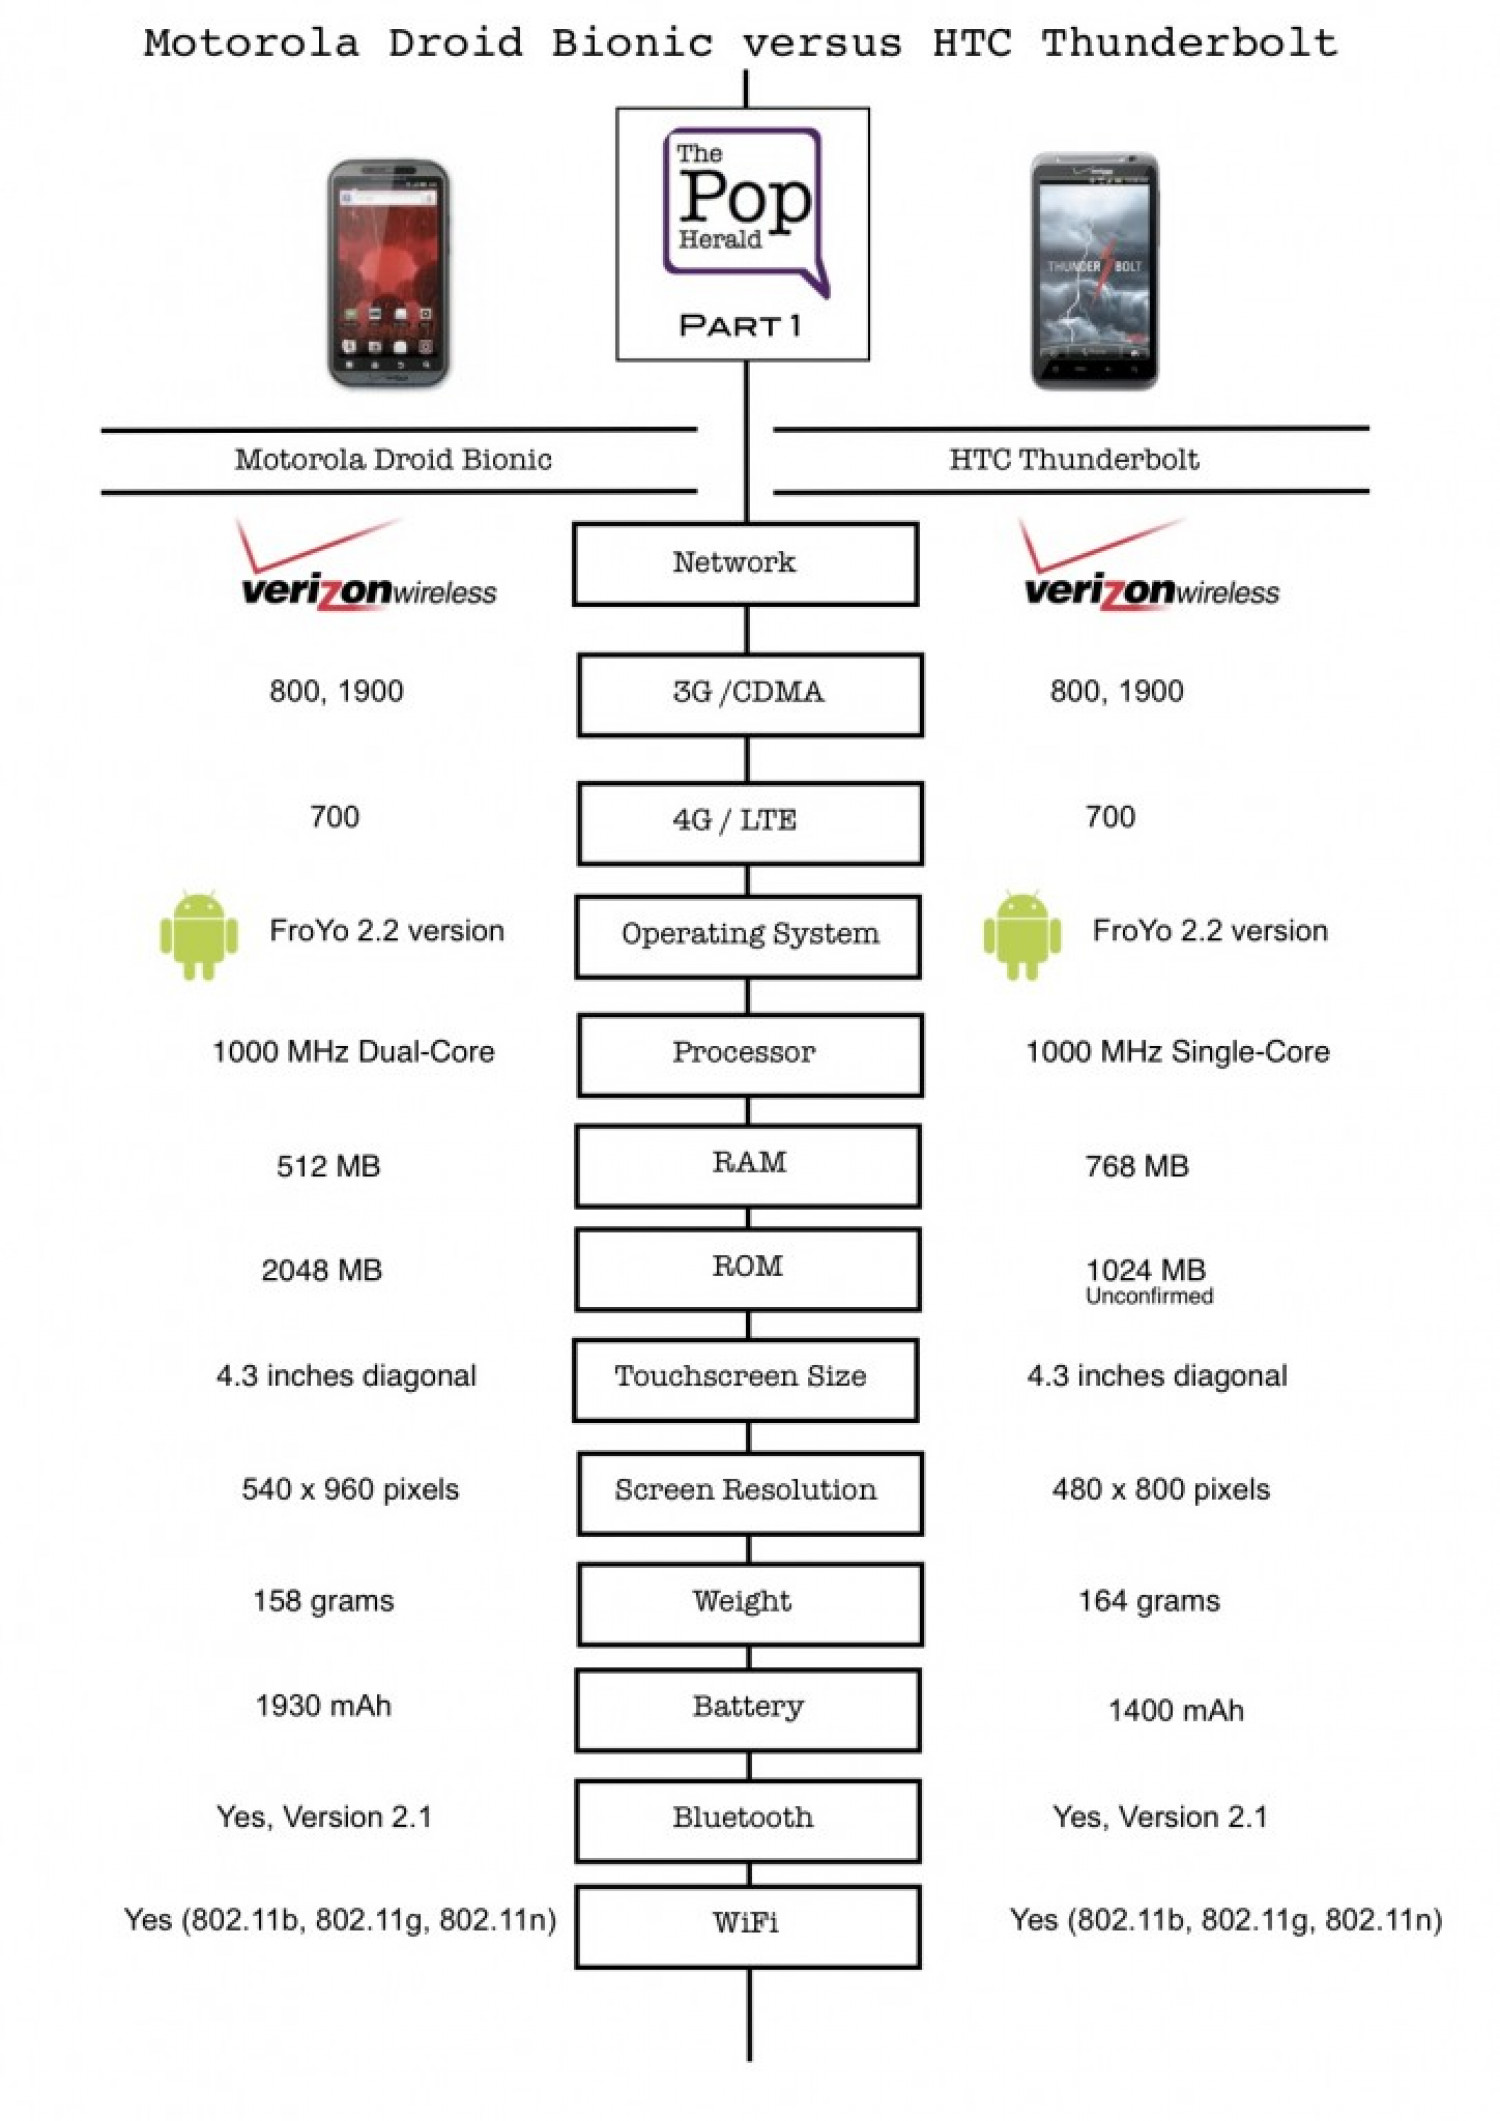 Motorola Droid Bionic Vs HTC Thunderbolt: Infographic Comparison ... Infographic